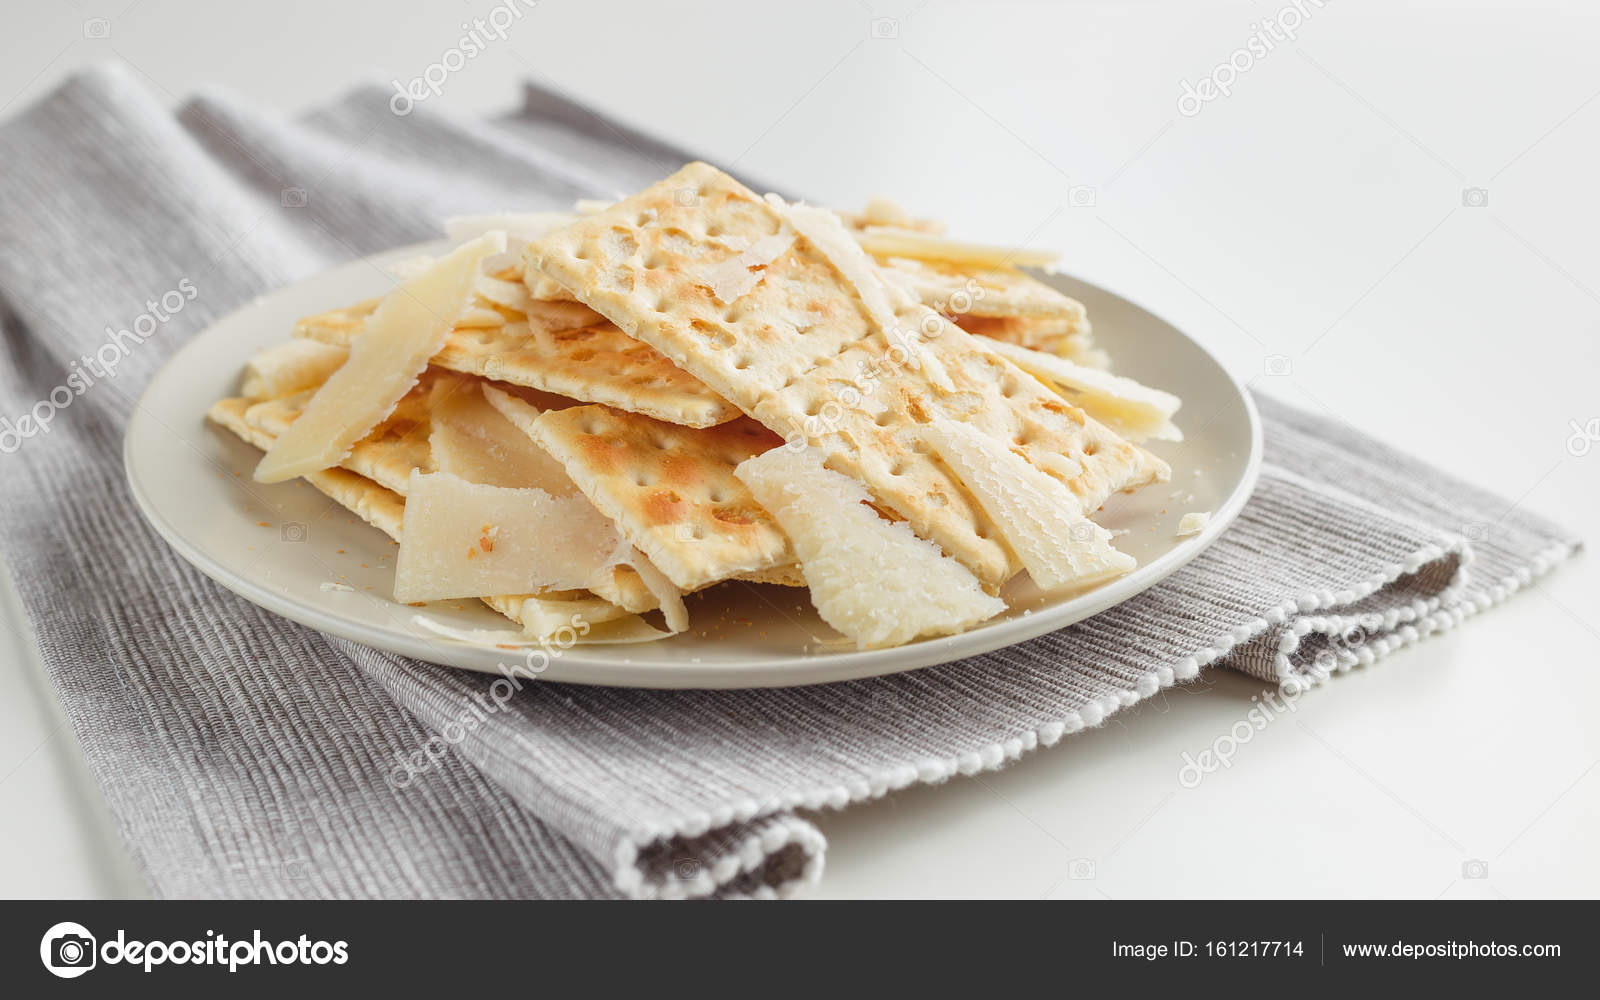 Closeup of a snack plate. Cheese and crackers on grey plate and grey napkin over white background u2014 Photo by AnSyvan & Snack plate of cheese and crackers u2014 Stock Photo © AnSyvan #161217714